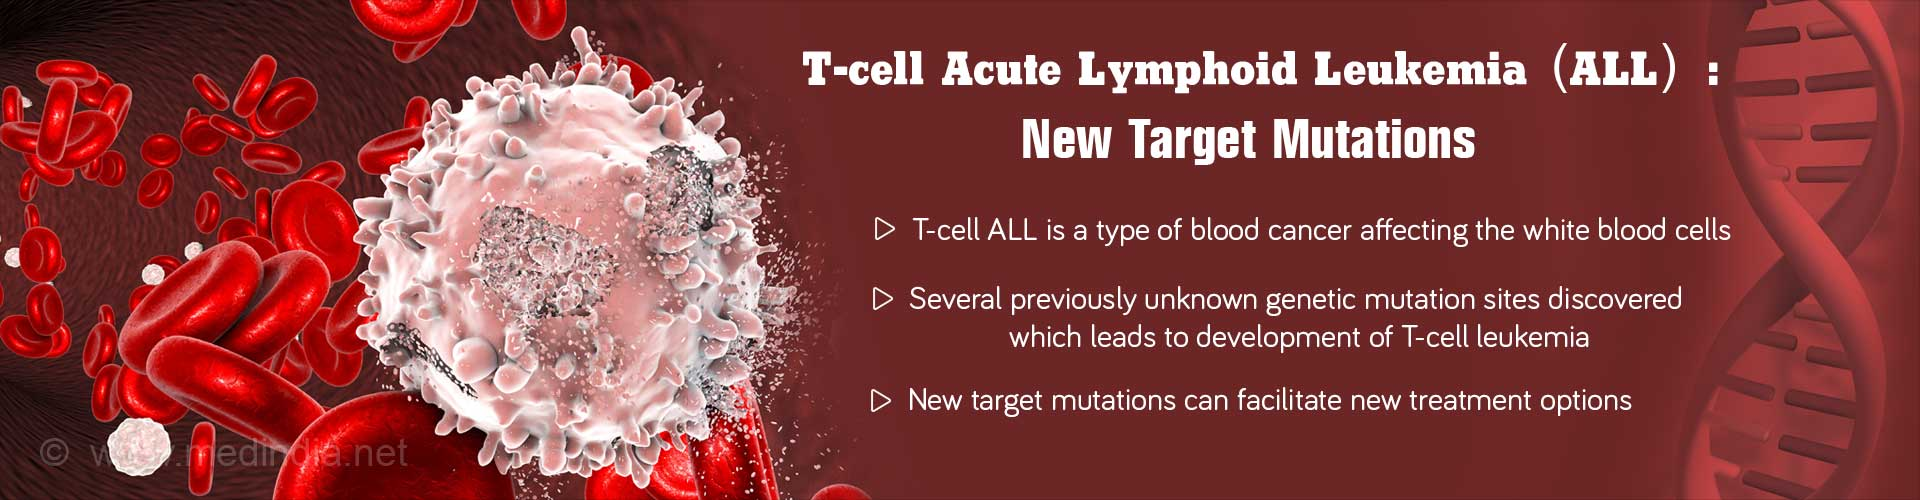 T-cell Acute Lymphoid Leukemia (ALL) New Target Mutations